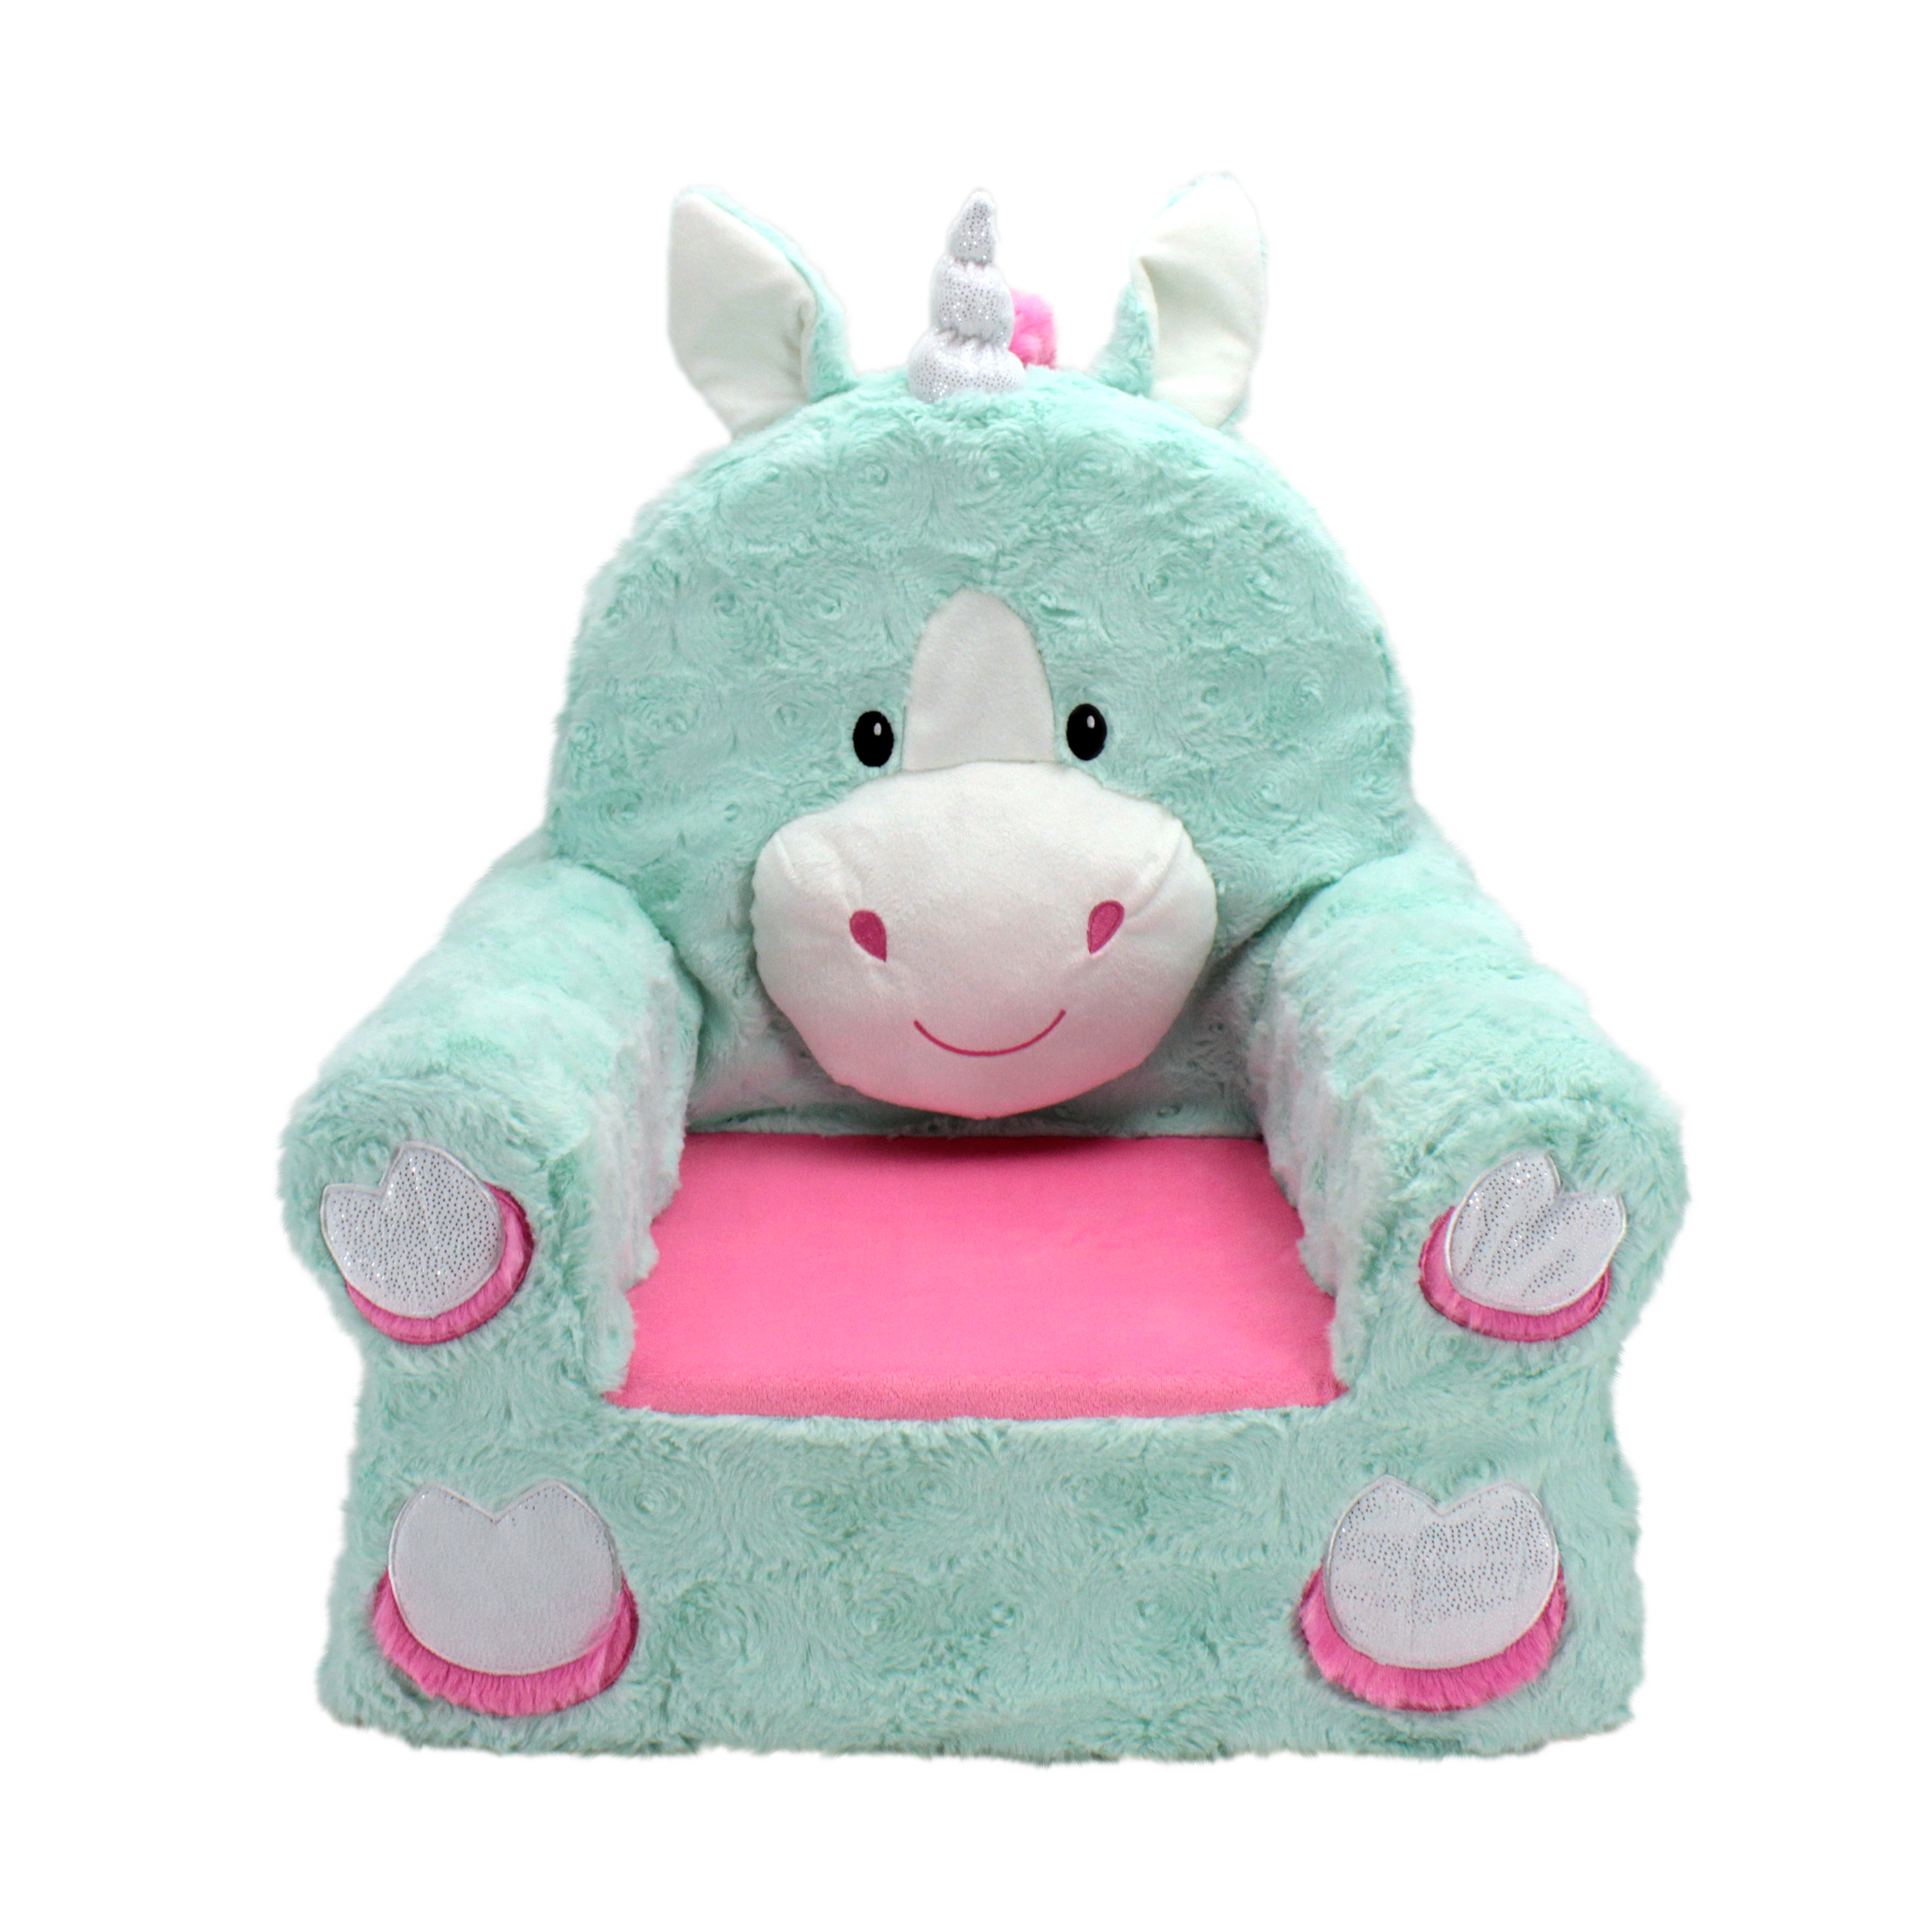 frozen flip sofa canada electric recliner chair motor kids sofas sweet seats adorable teal unicorn children s standard size machine washable removable cover